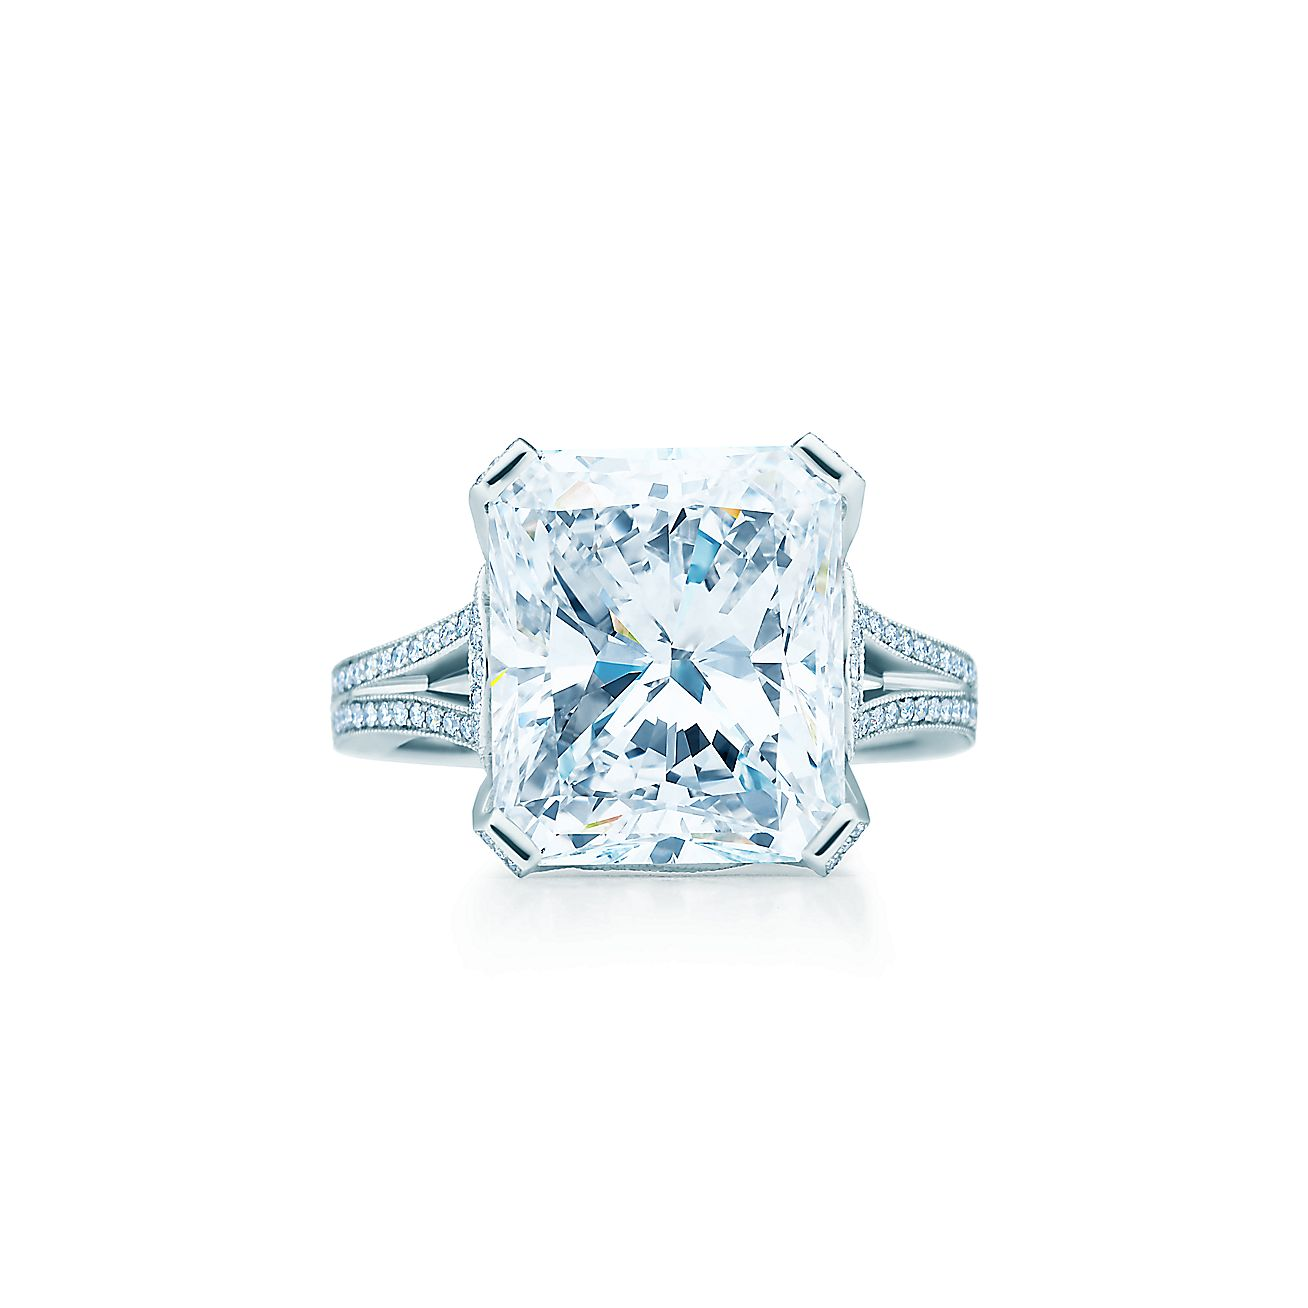 Rectangular Diamond Ring